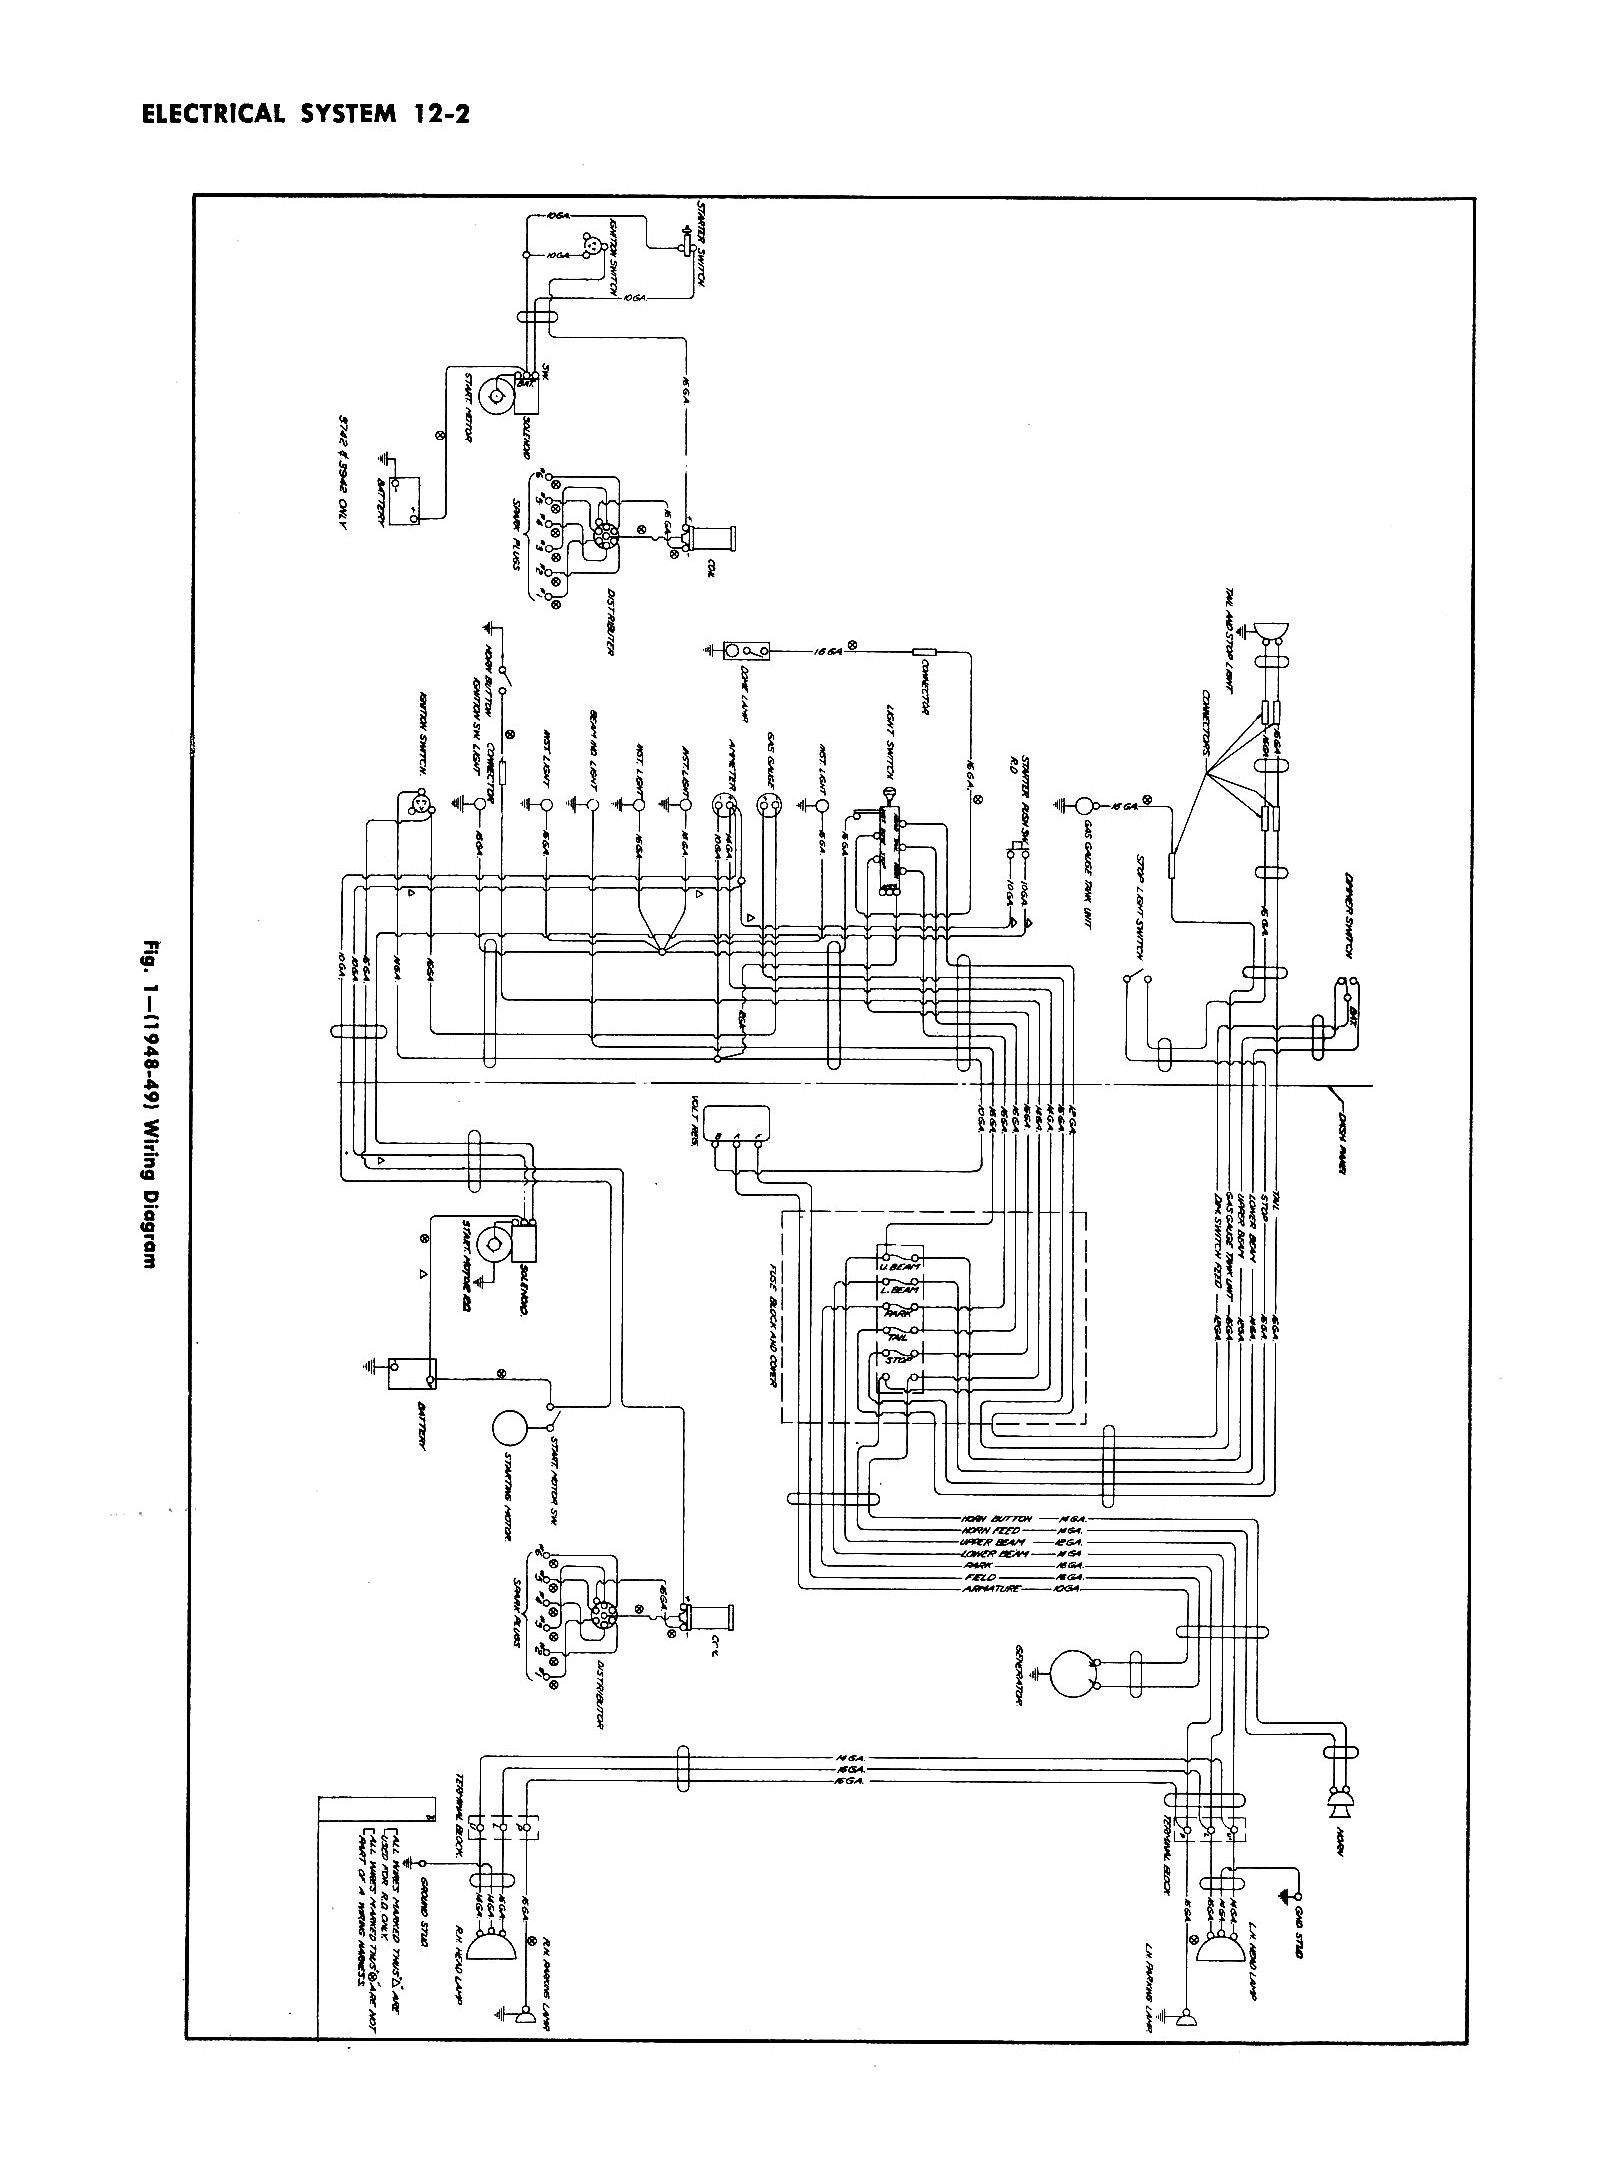 1949 Ford Engine Wiring Diagram Data 1956 Chevy Light Switch One Ton Truck Diagrams Library 1955 Buick